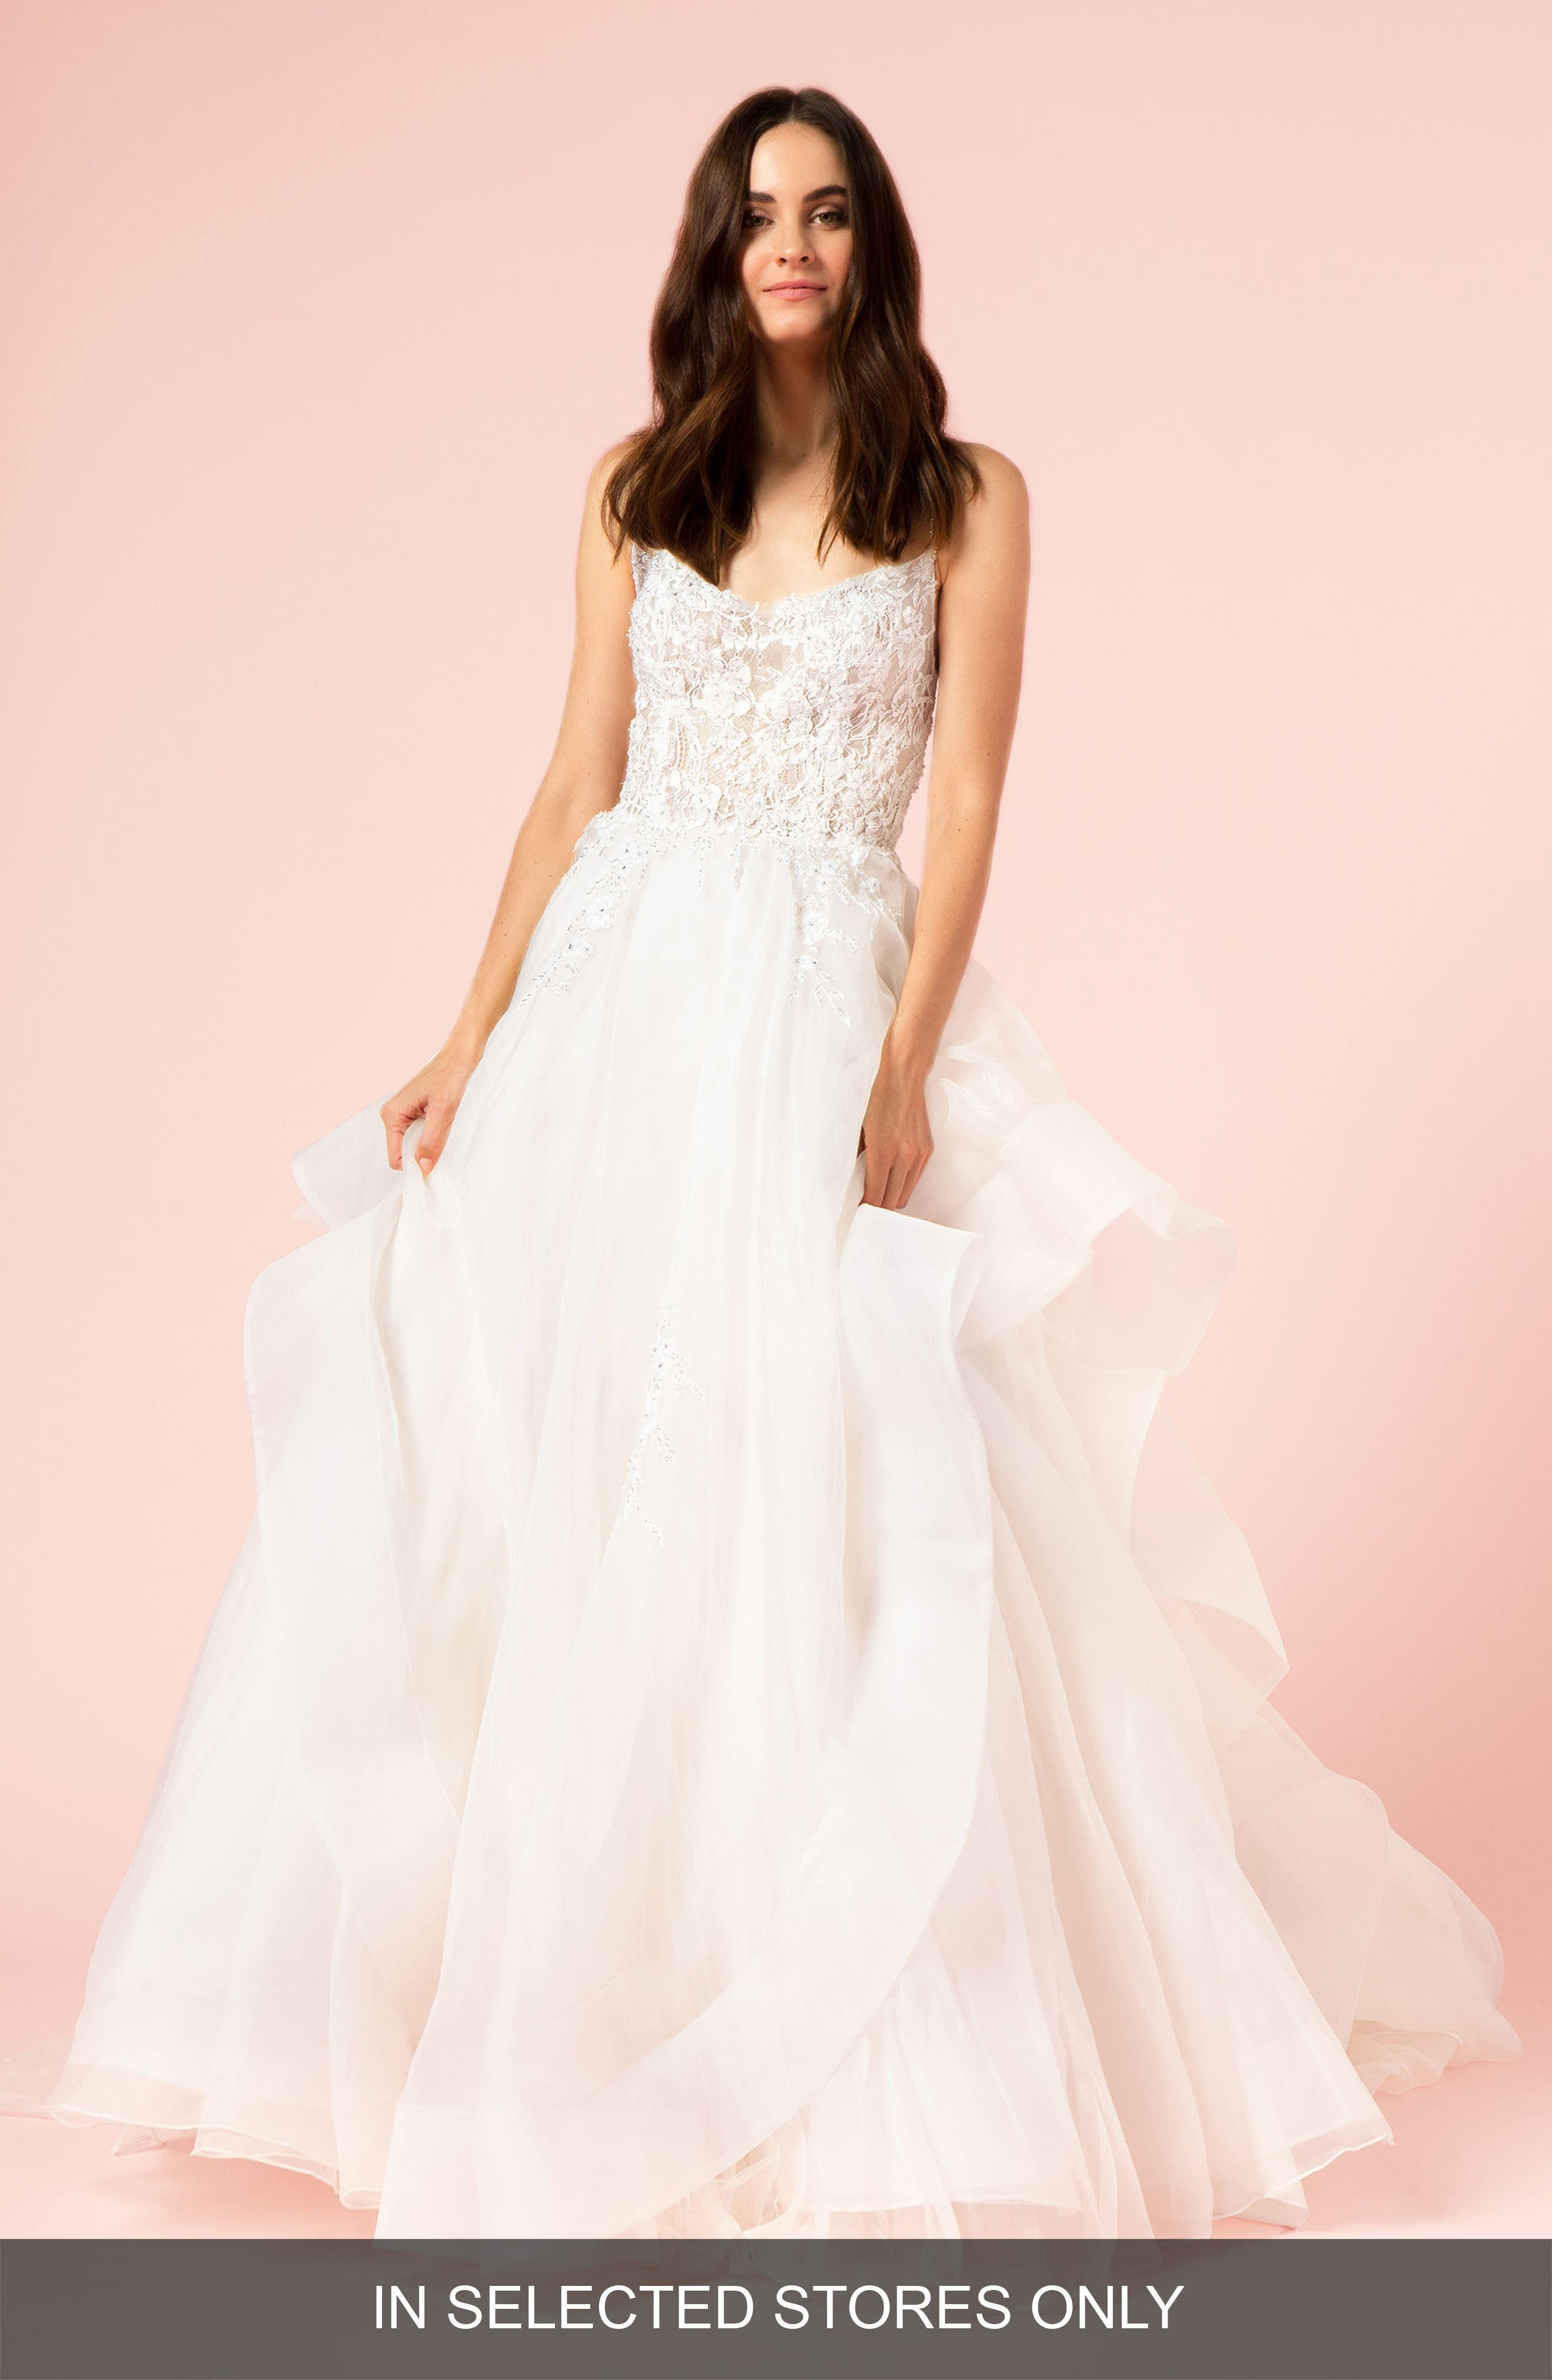 Main Image - BLISS Monique Lhuillier Embellished Lace & Organza Ballgown